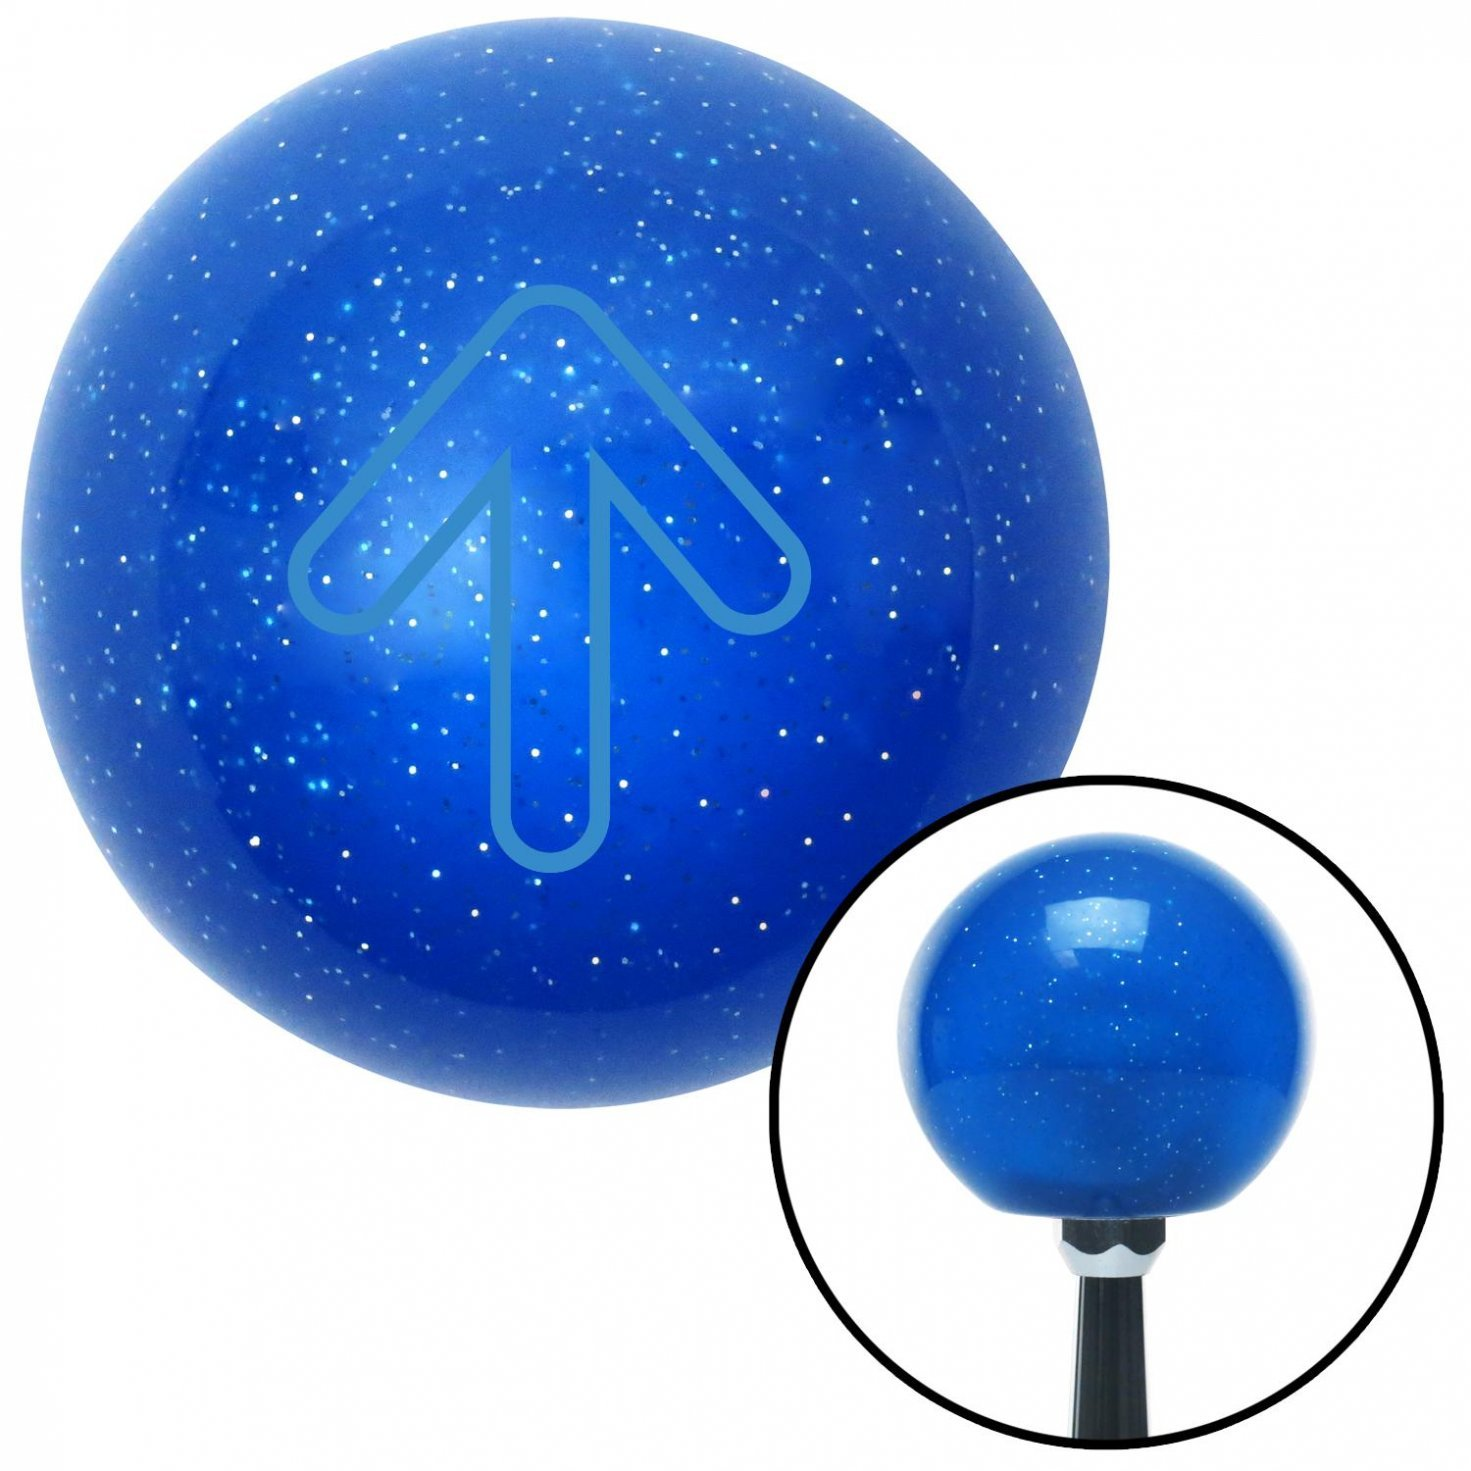 American Shifter 22093 Blue Metal Flake Shift Knob with 16mm x 1.5 Insert Blue Bubble Directional Arrow Up